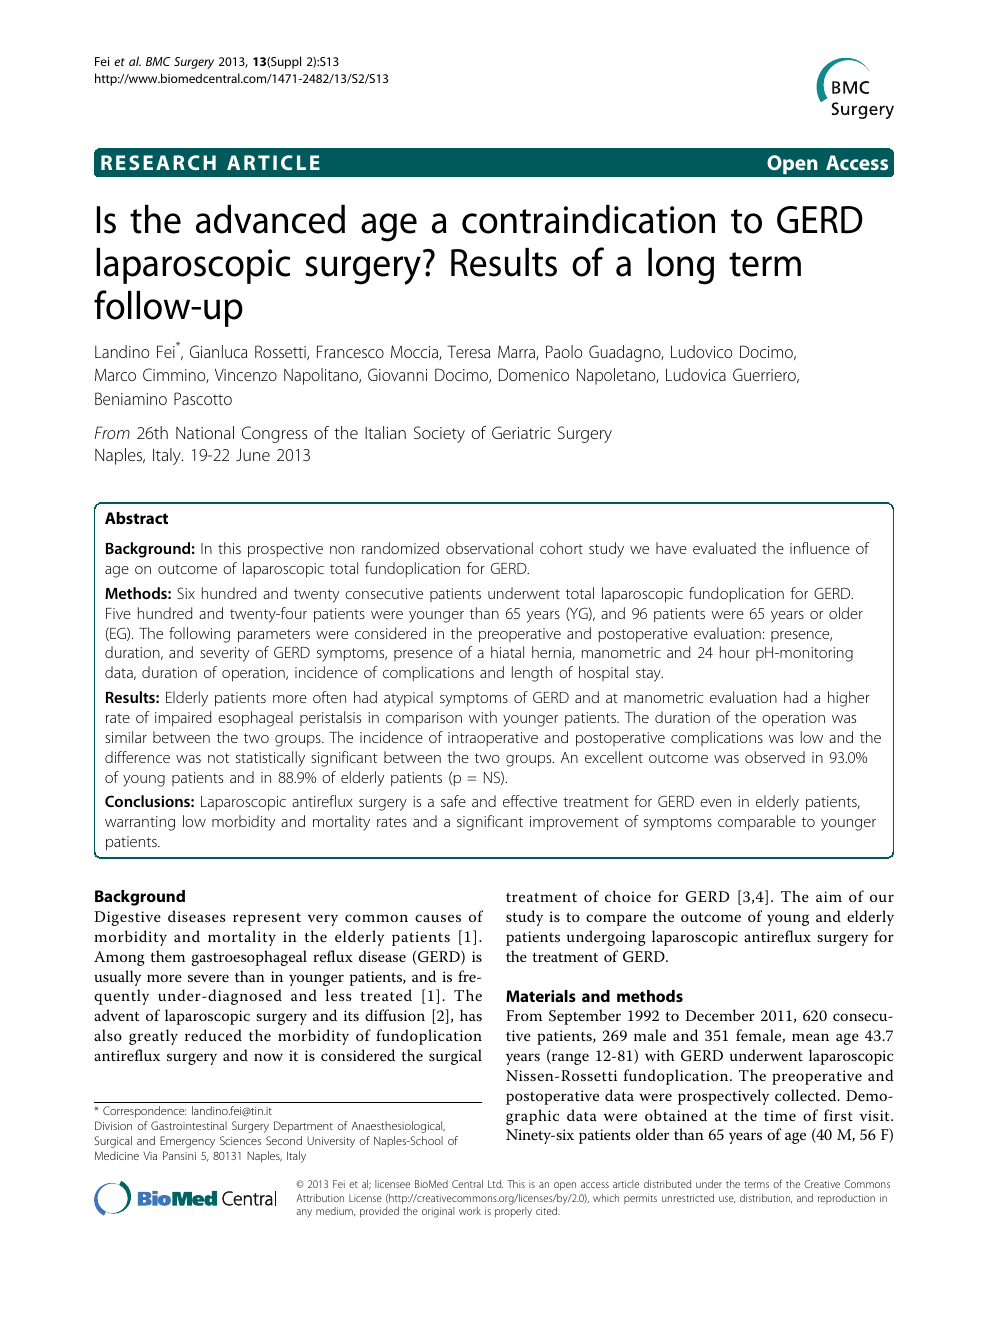 Is the advanced age a contraindication to GERD laparoscopic